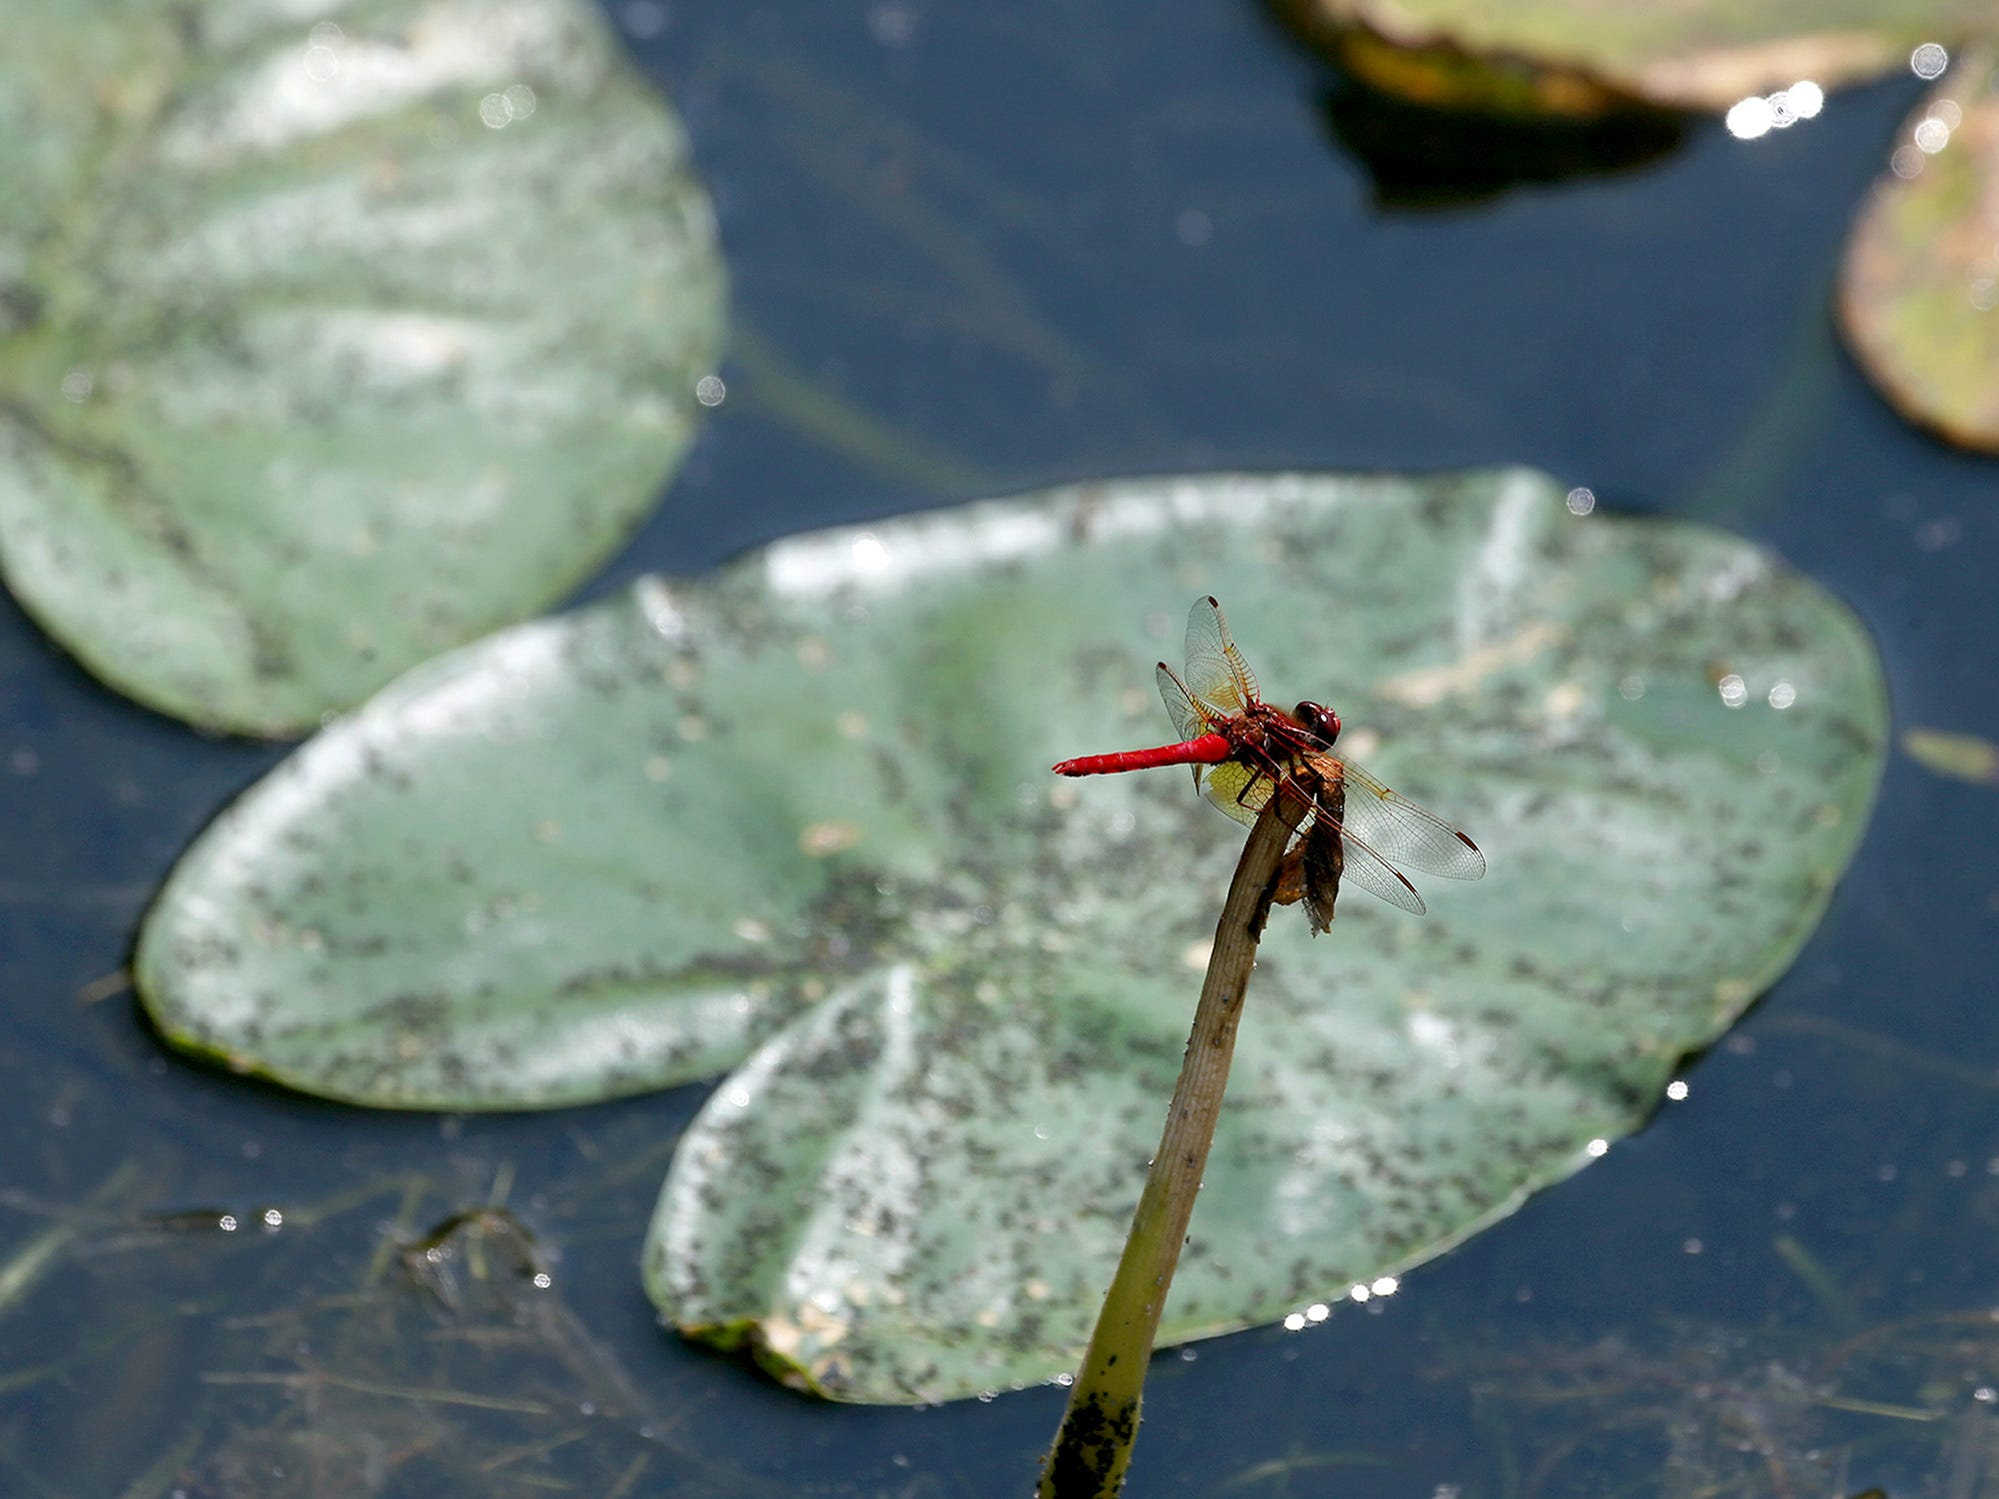 A dragonfly clings to a brach amongst the lily pads at Kitsap Lake on Monday August 6, 2108.